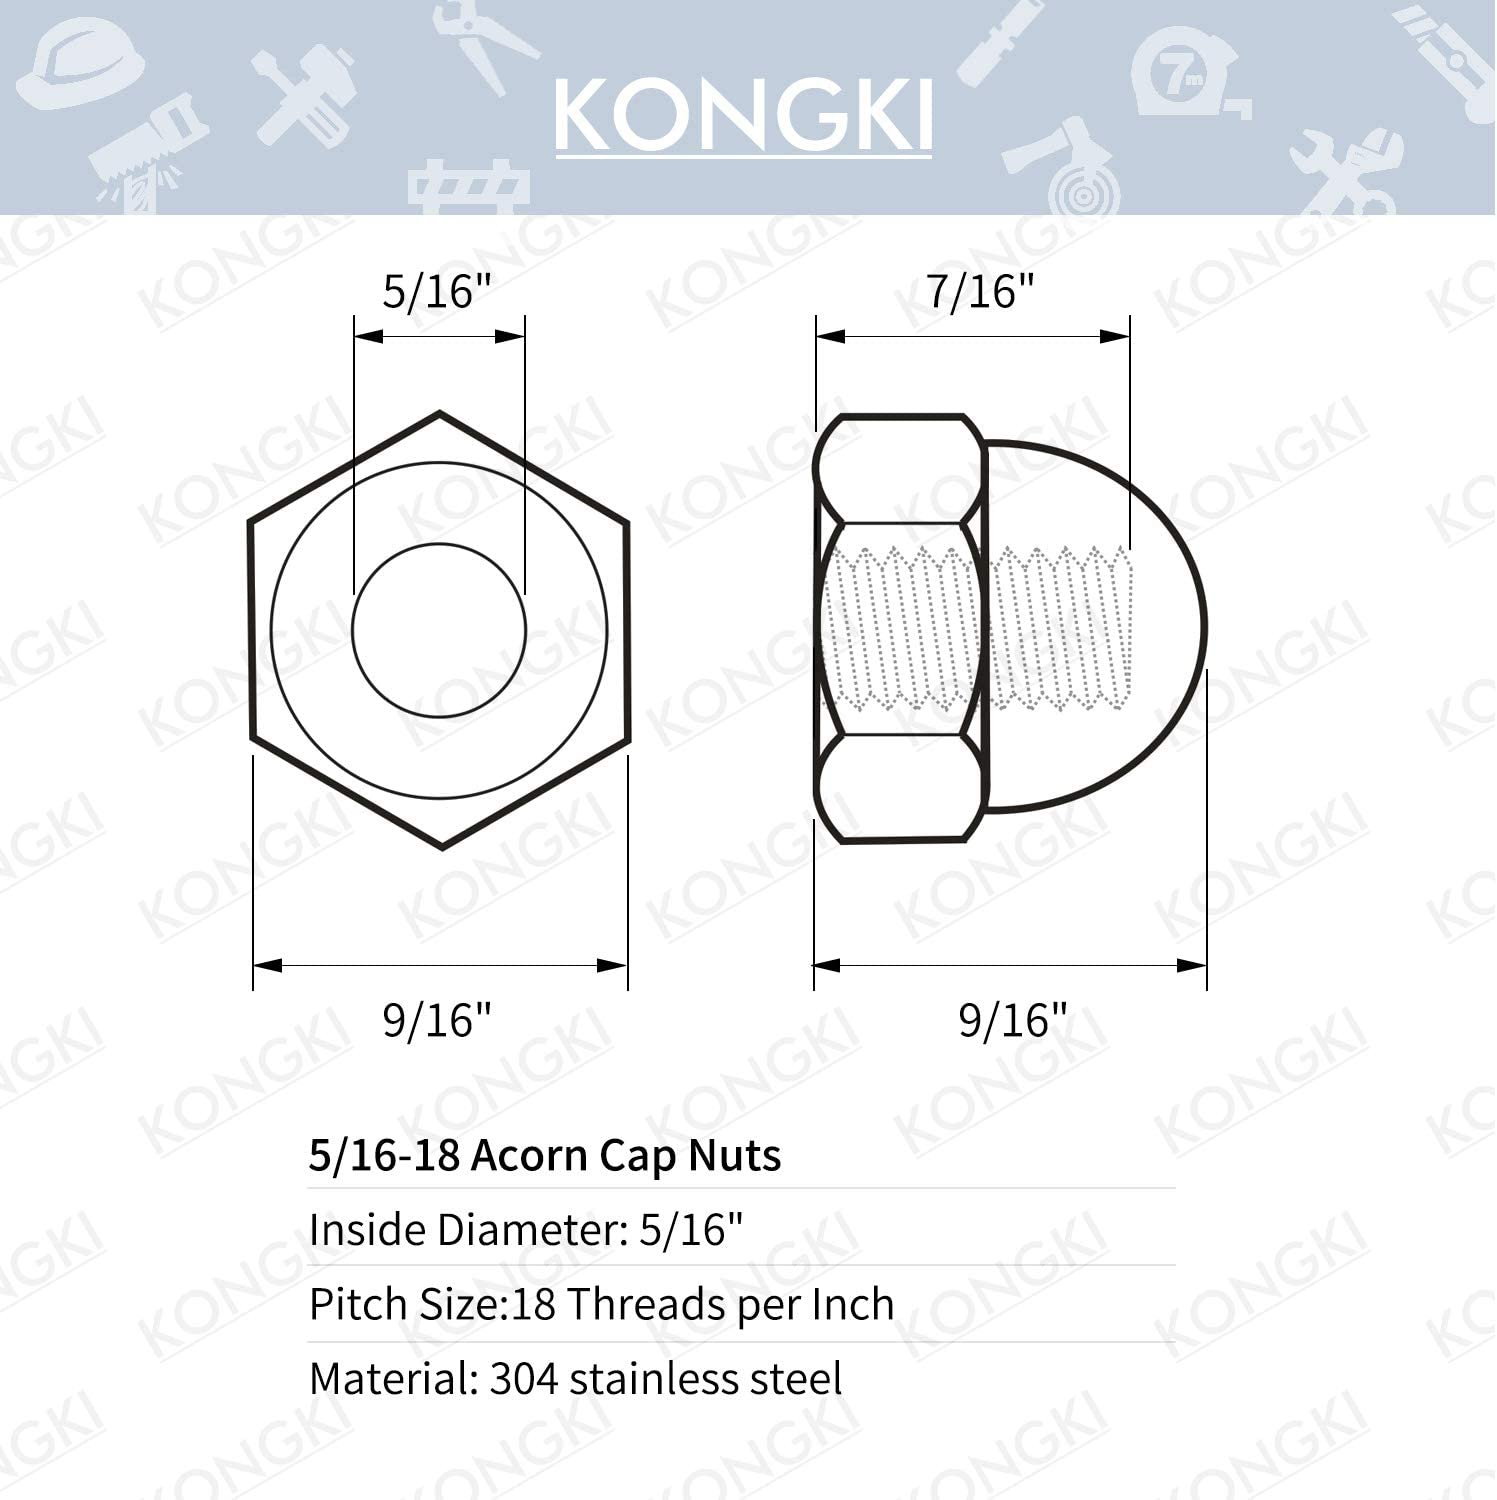 8-32 Threads 304 Stainless Steel 18-8 20 PCS Bright Finish Stainless Steel Acorn Hex Cap Nuts